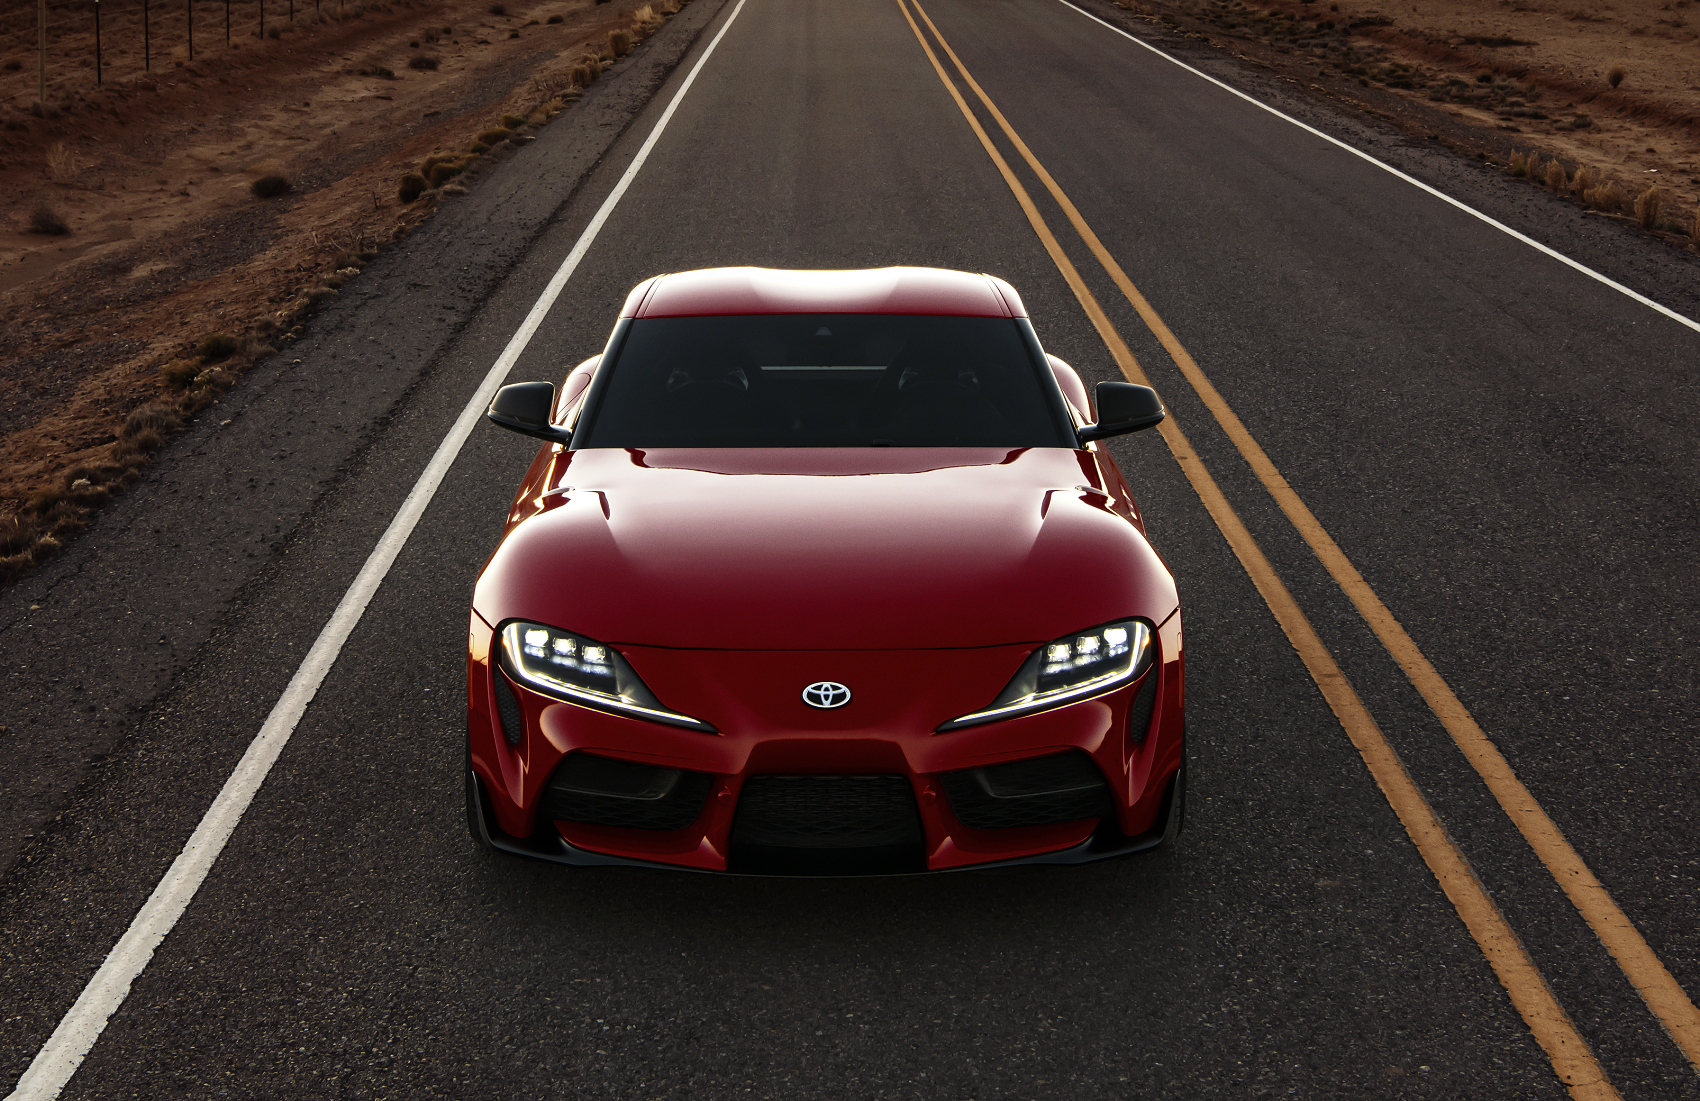 2020 Toyota Supra on Highway